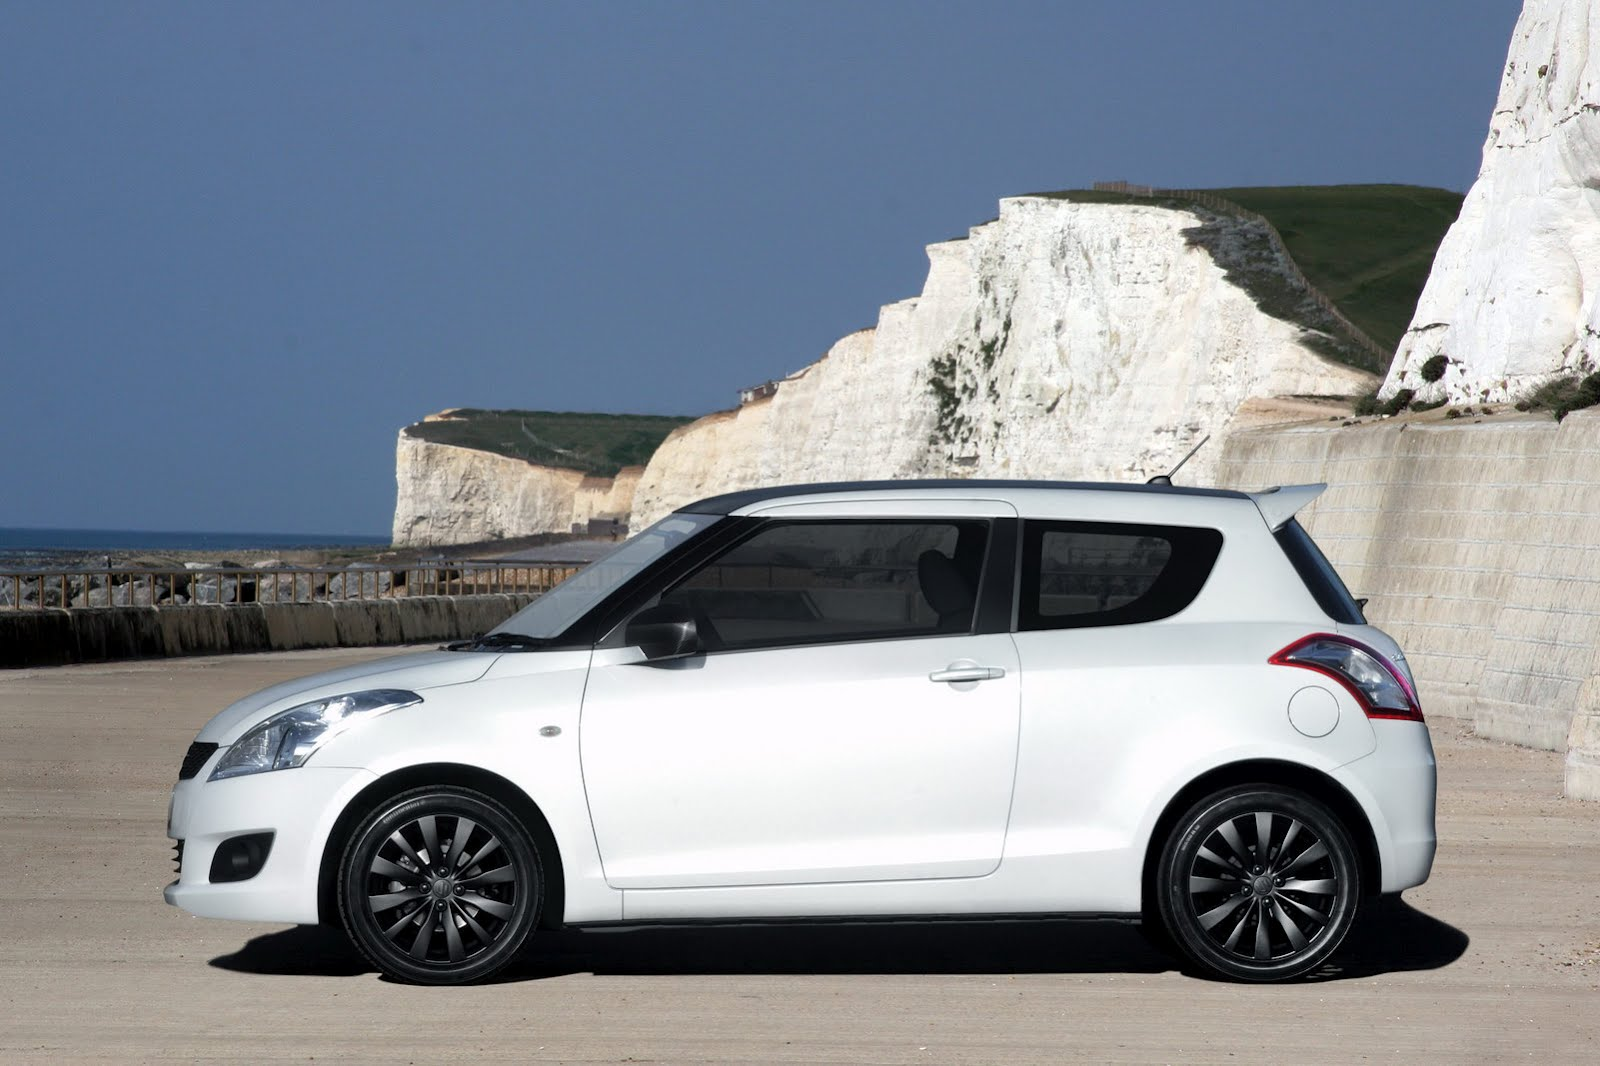 All About Ducati 2012 Suzuki Swift Attitude UK Edition